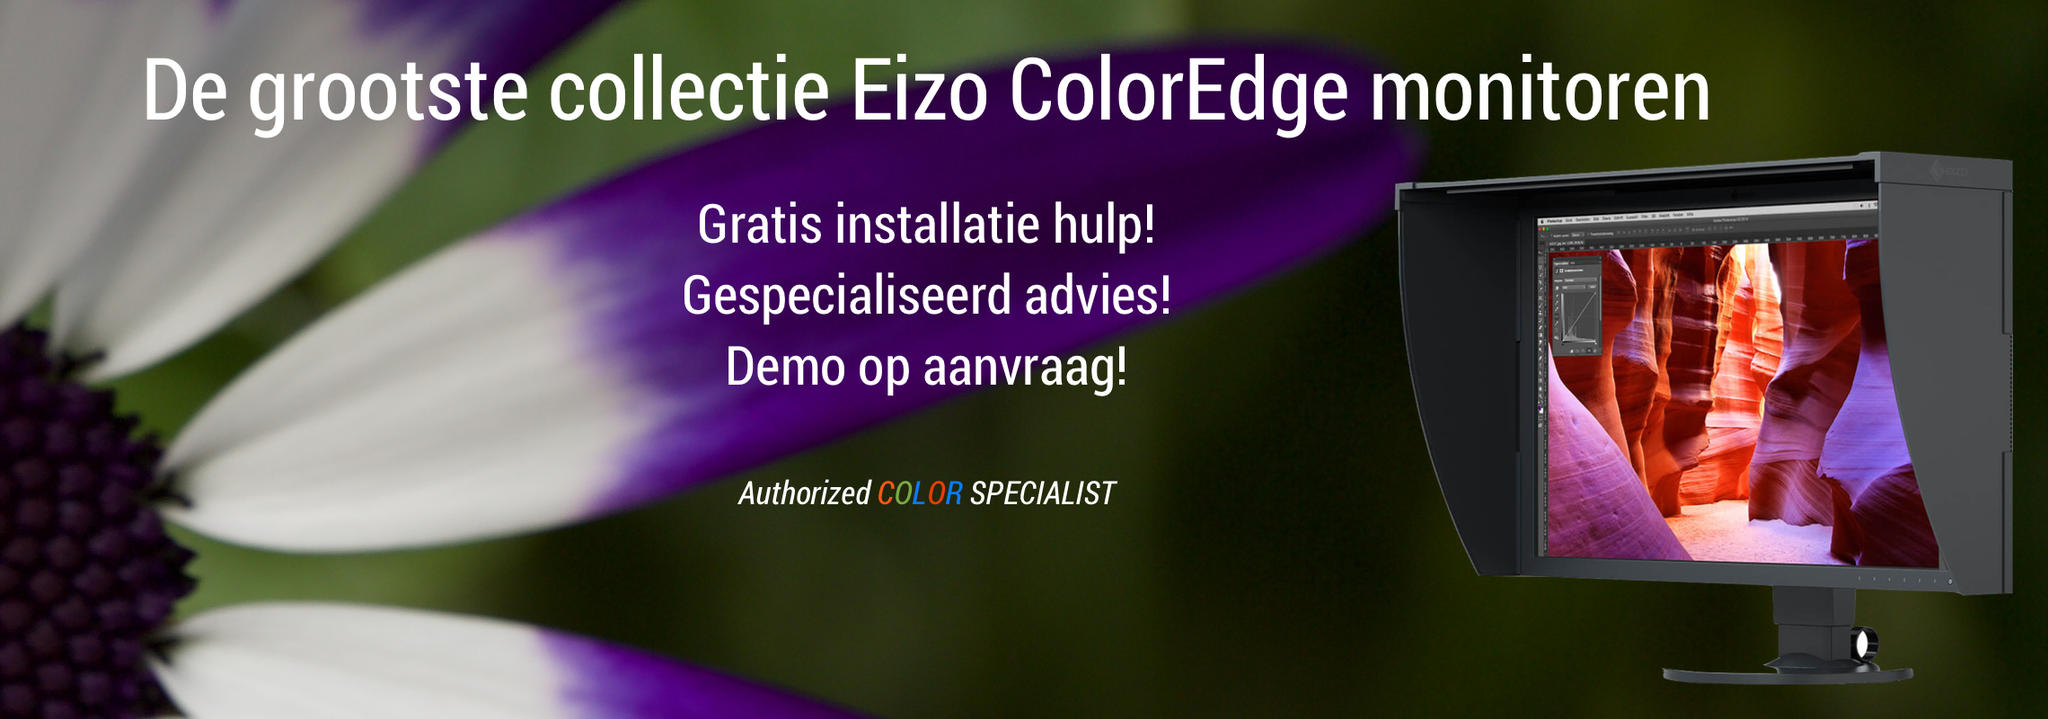 Nieuwe Eizo ColorEdge Monitoren